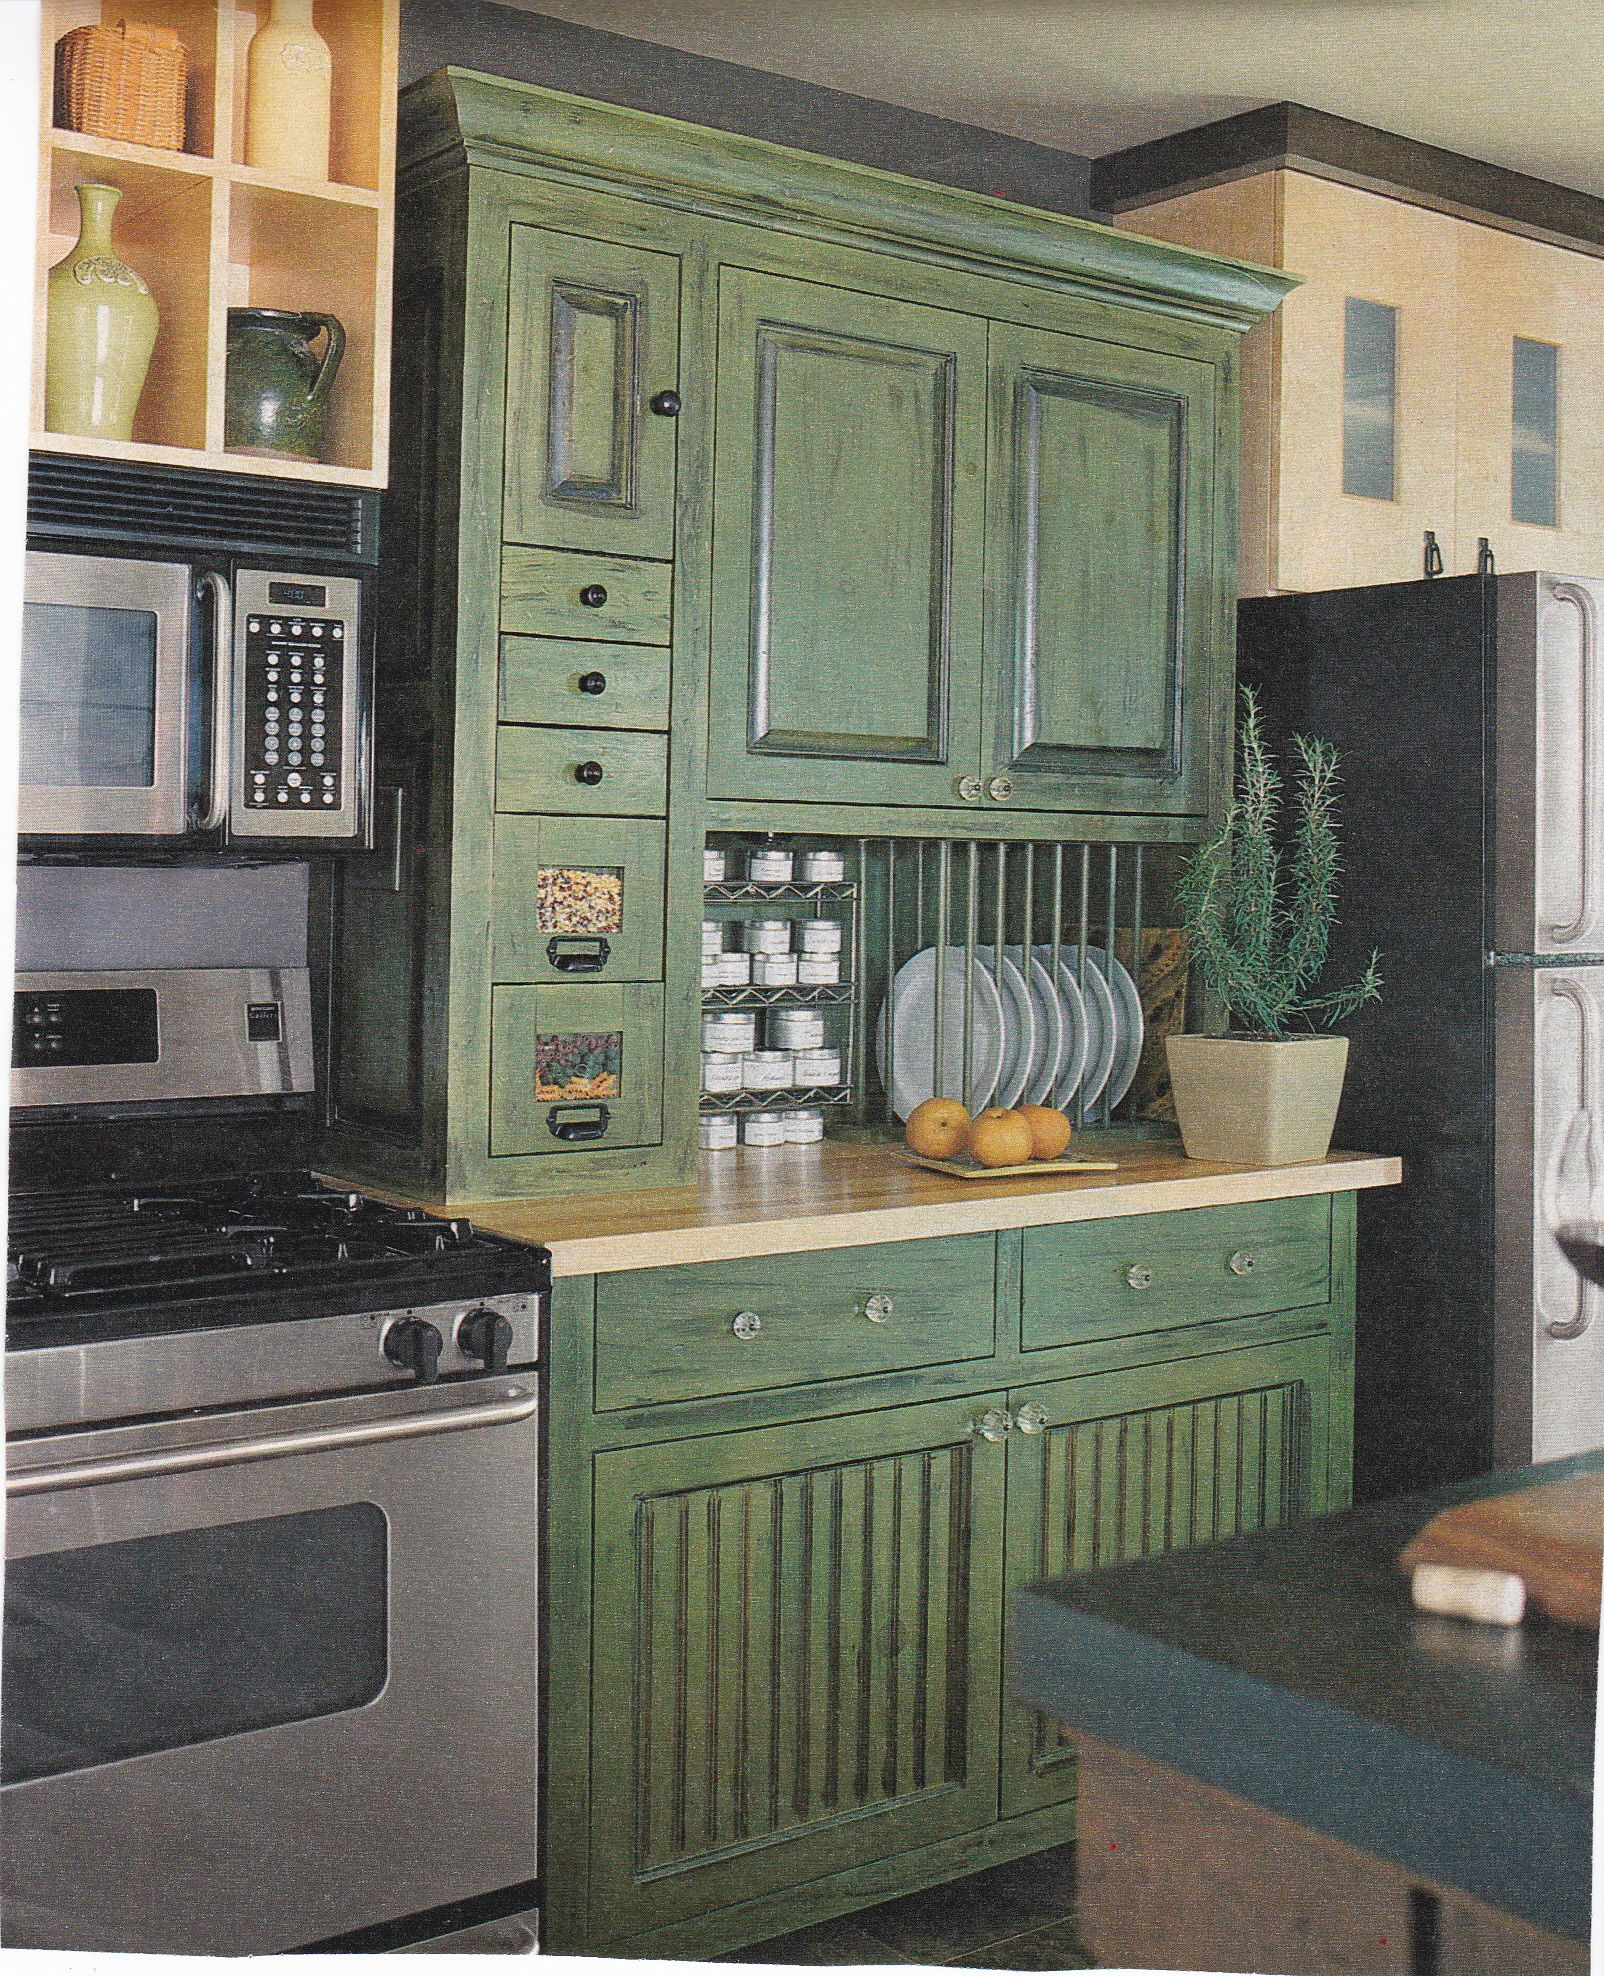 Kitchen Remake Kitchen Hutch Beside The Stove Is Balanced With Shelves Over The